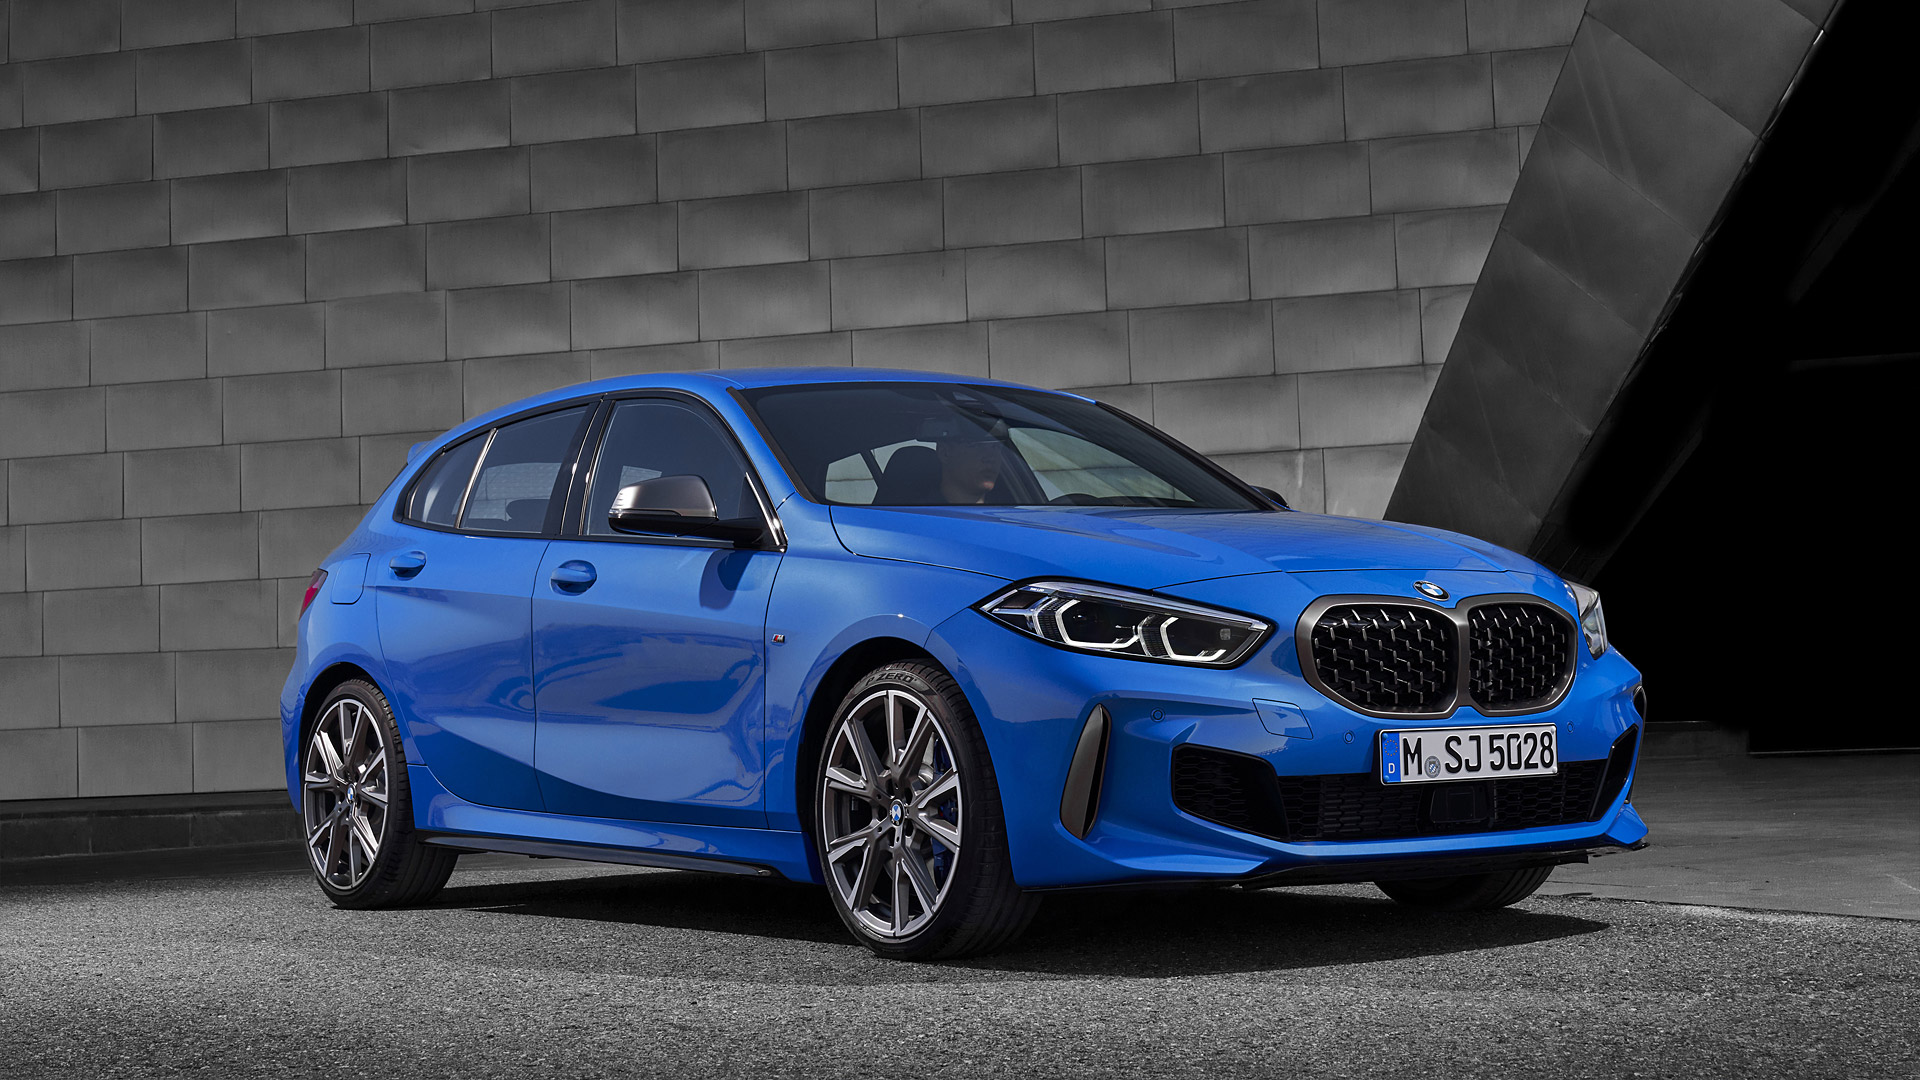 2020 BMW M135i Wallpapers Specs Videos   4K HD   WSupercars 1920x1080